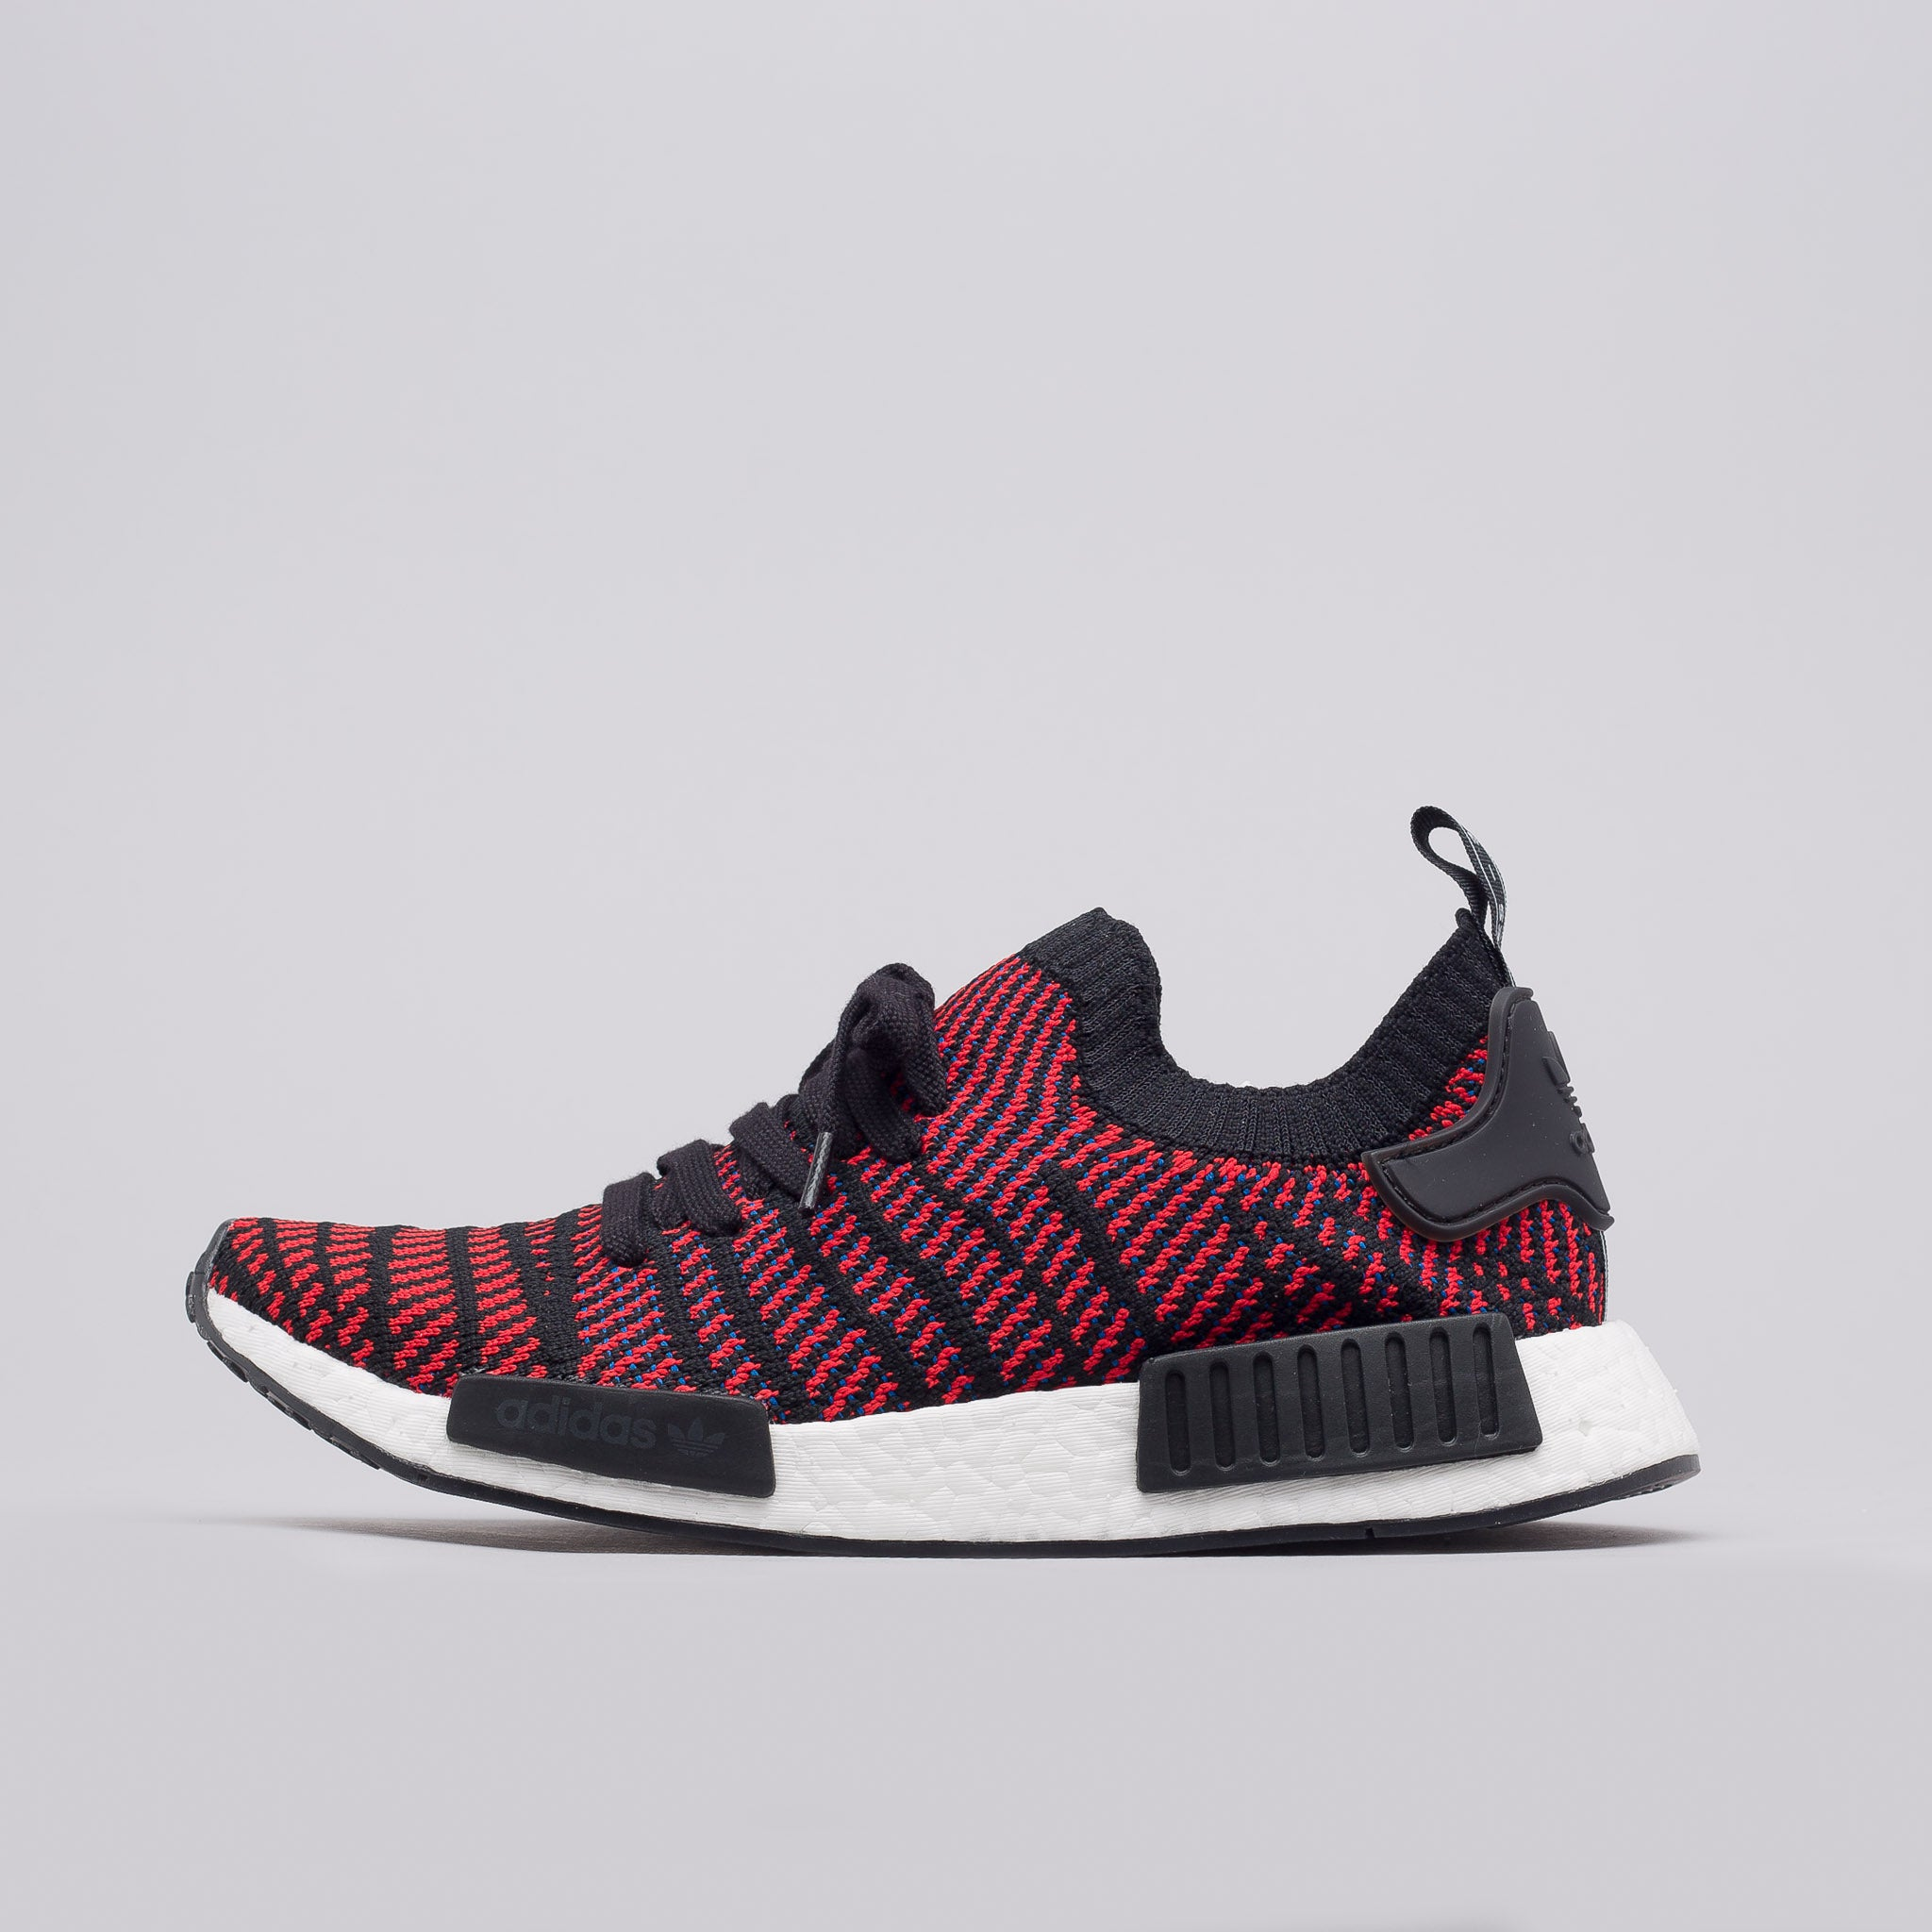 adidas NMD R1 Runner By3058 Grey Vapour Pink Women Shoe 100